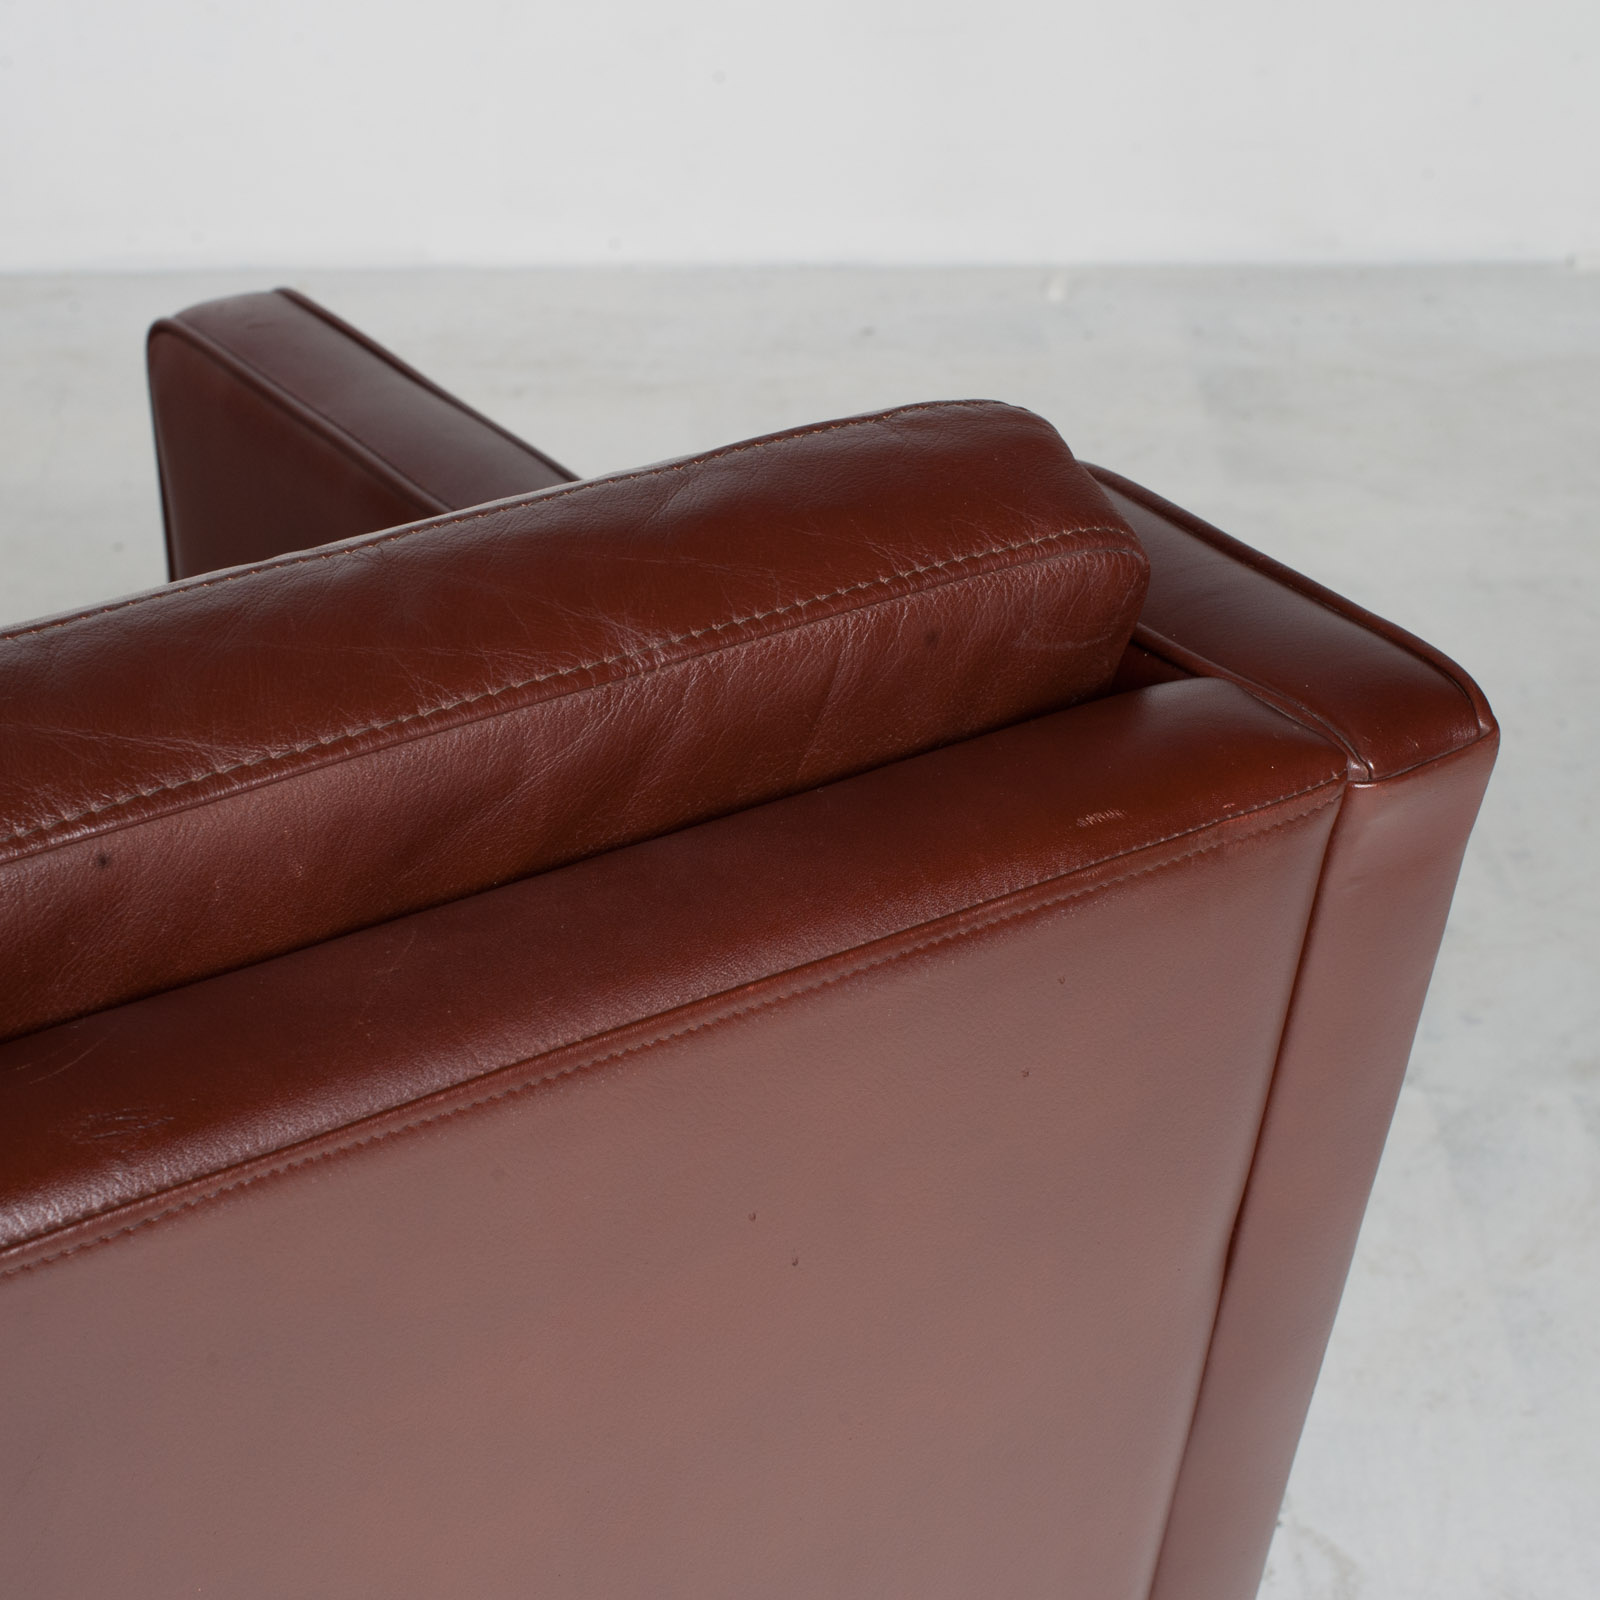 3 Seater Sofa In Tan Leather 1960s Denmark20